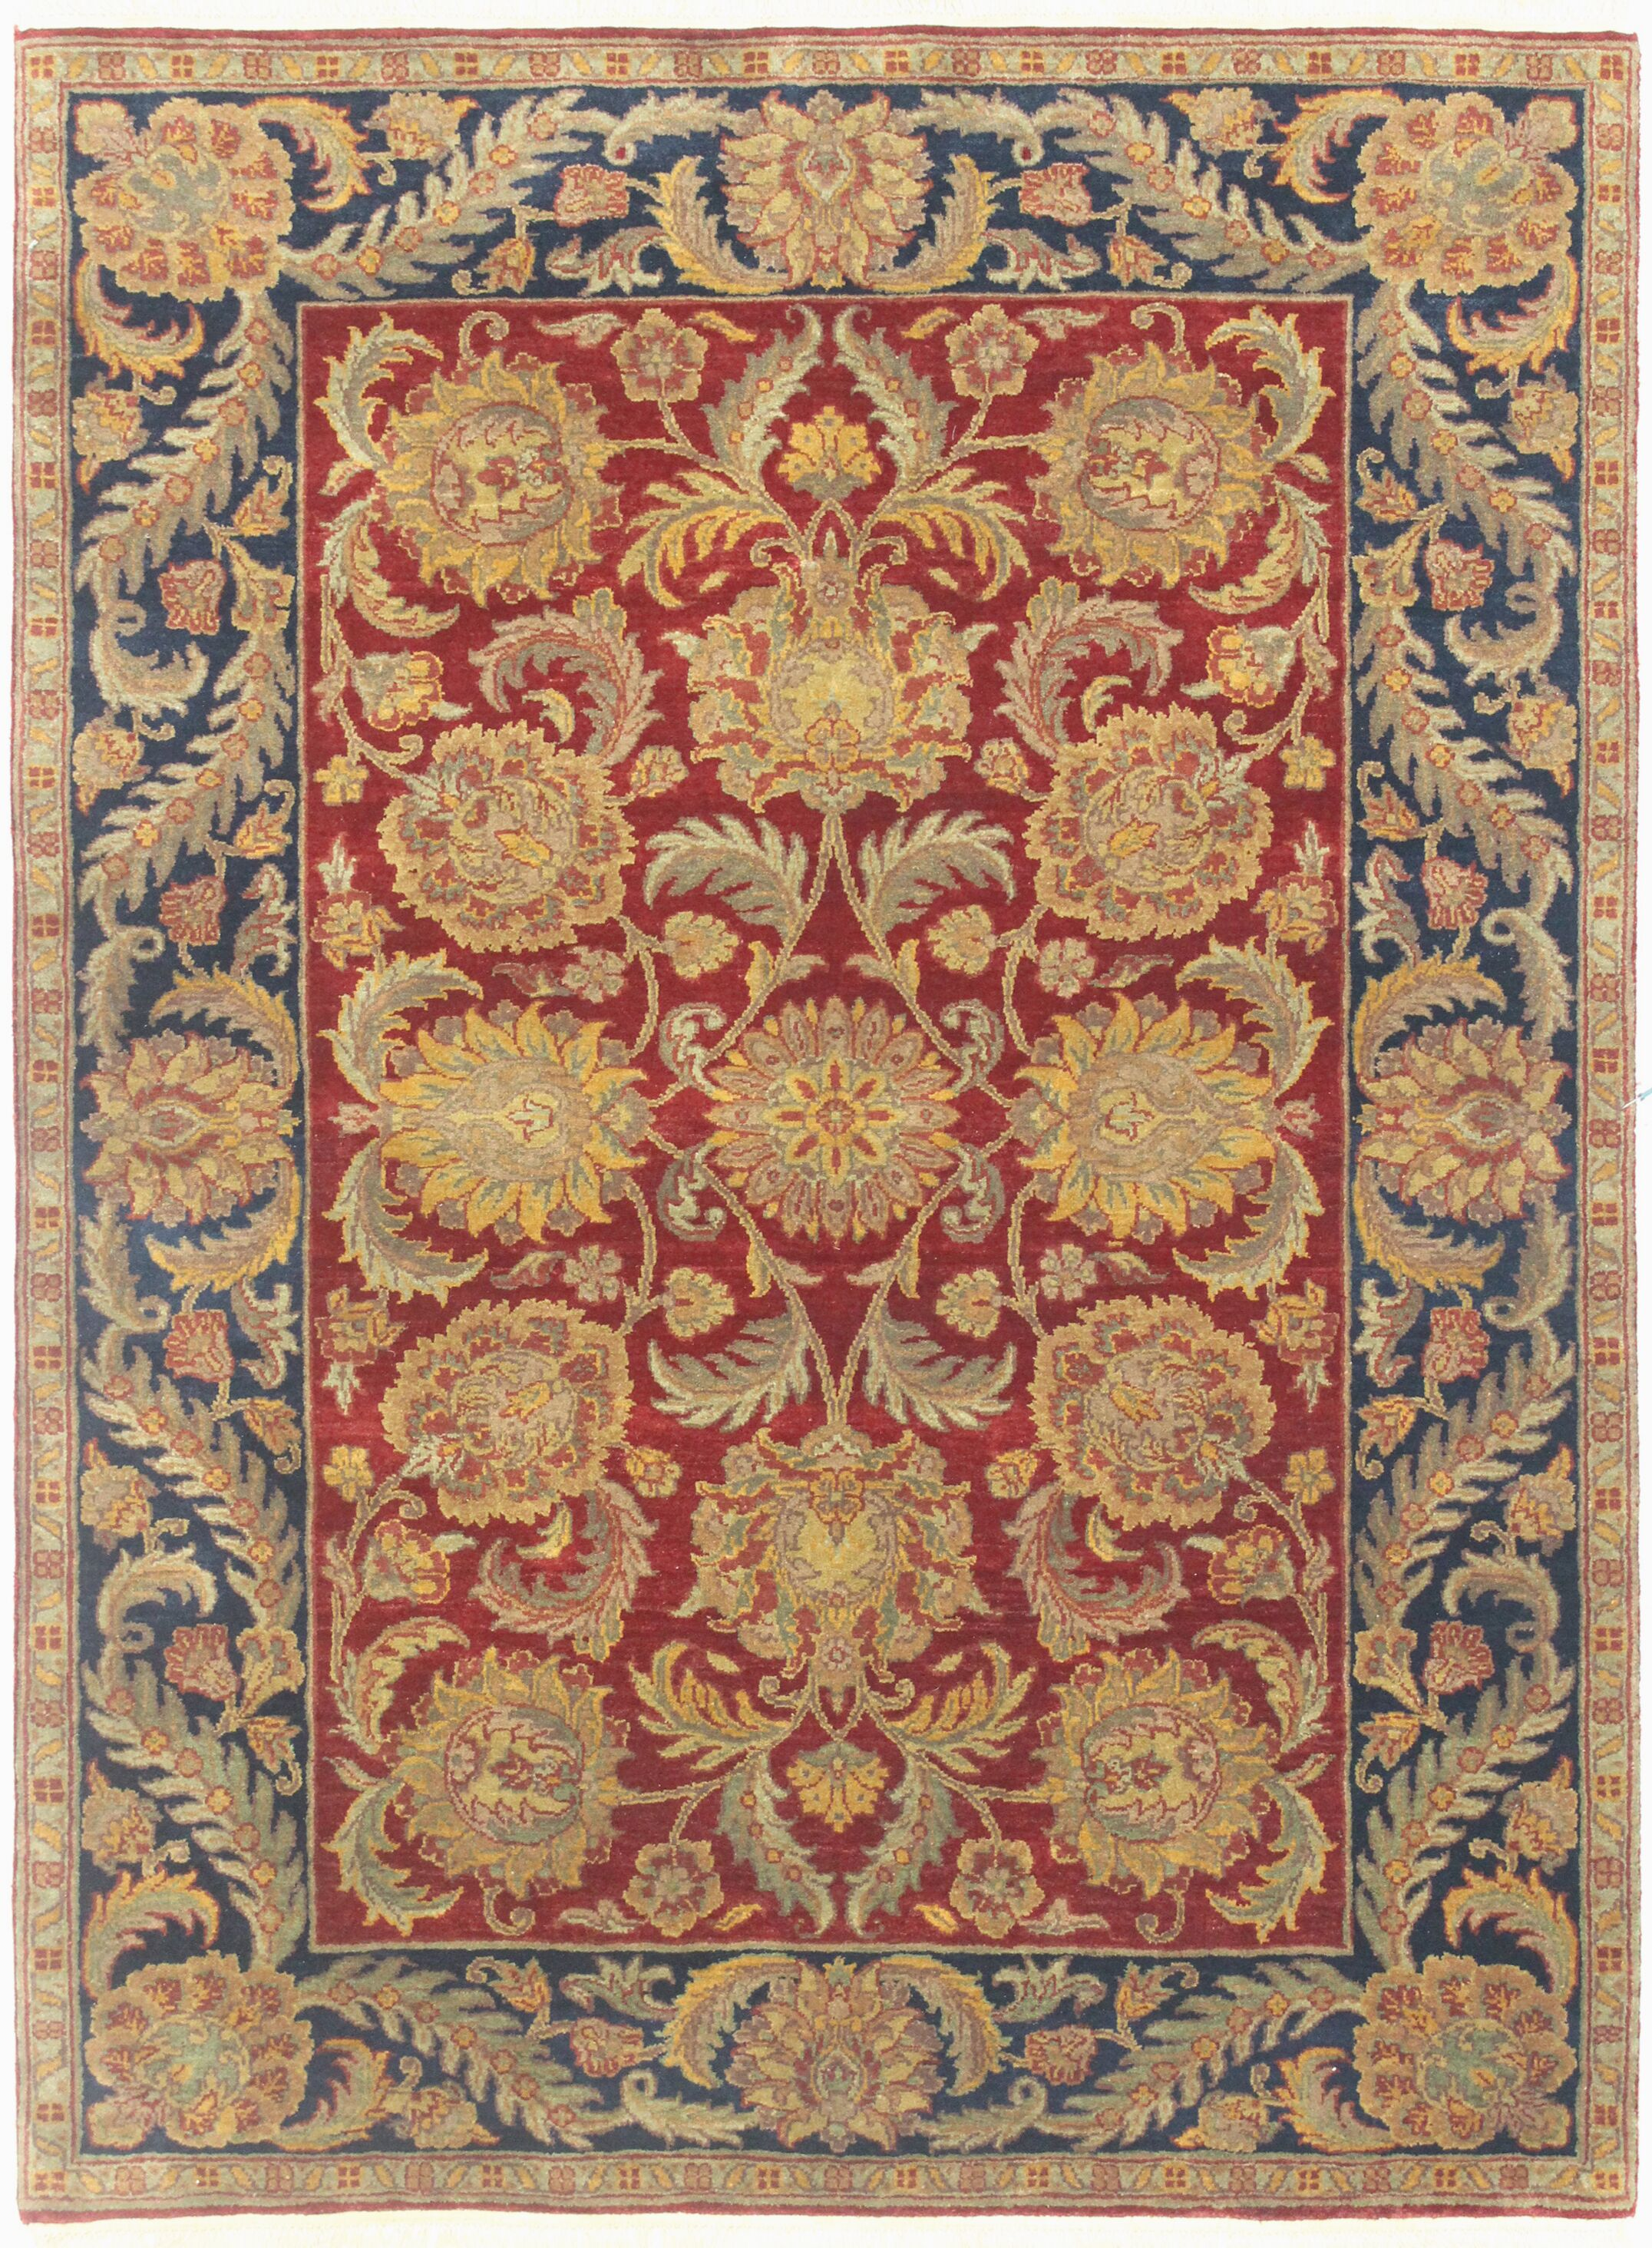 One-of-a-Kind Hand-Woven Wool Red/Blue Area Rug